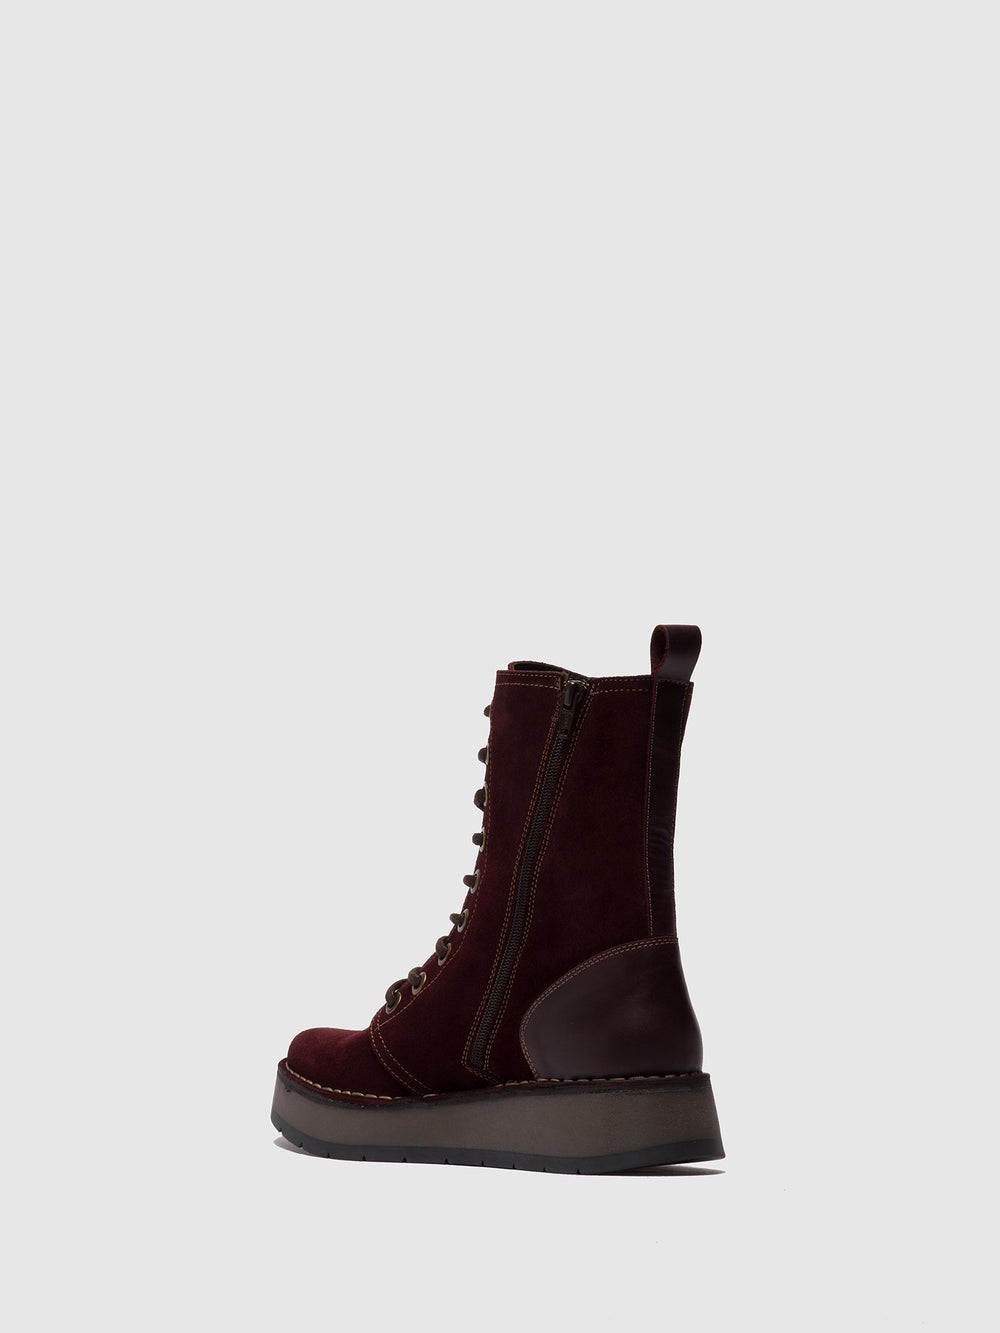 Lace-up Ankle Boots RAMI043FLY OILSUEDE/RUG WINE